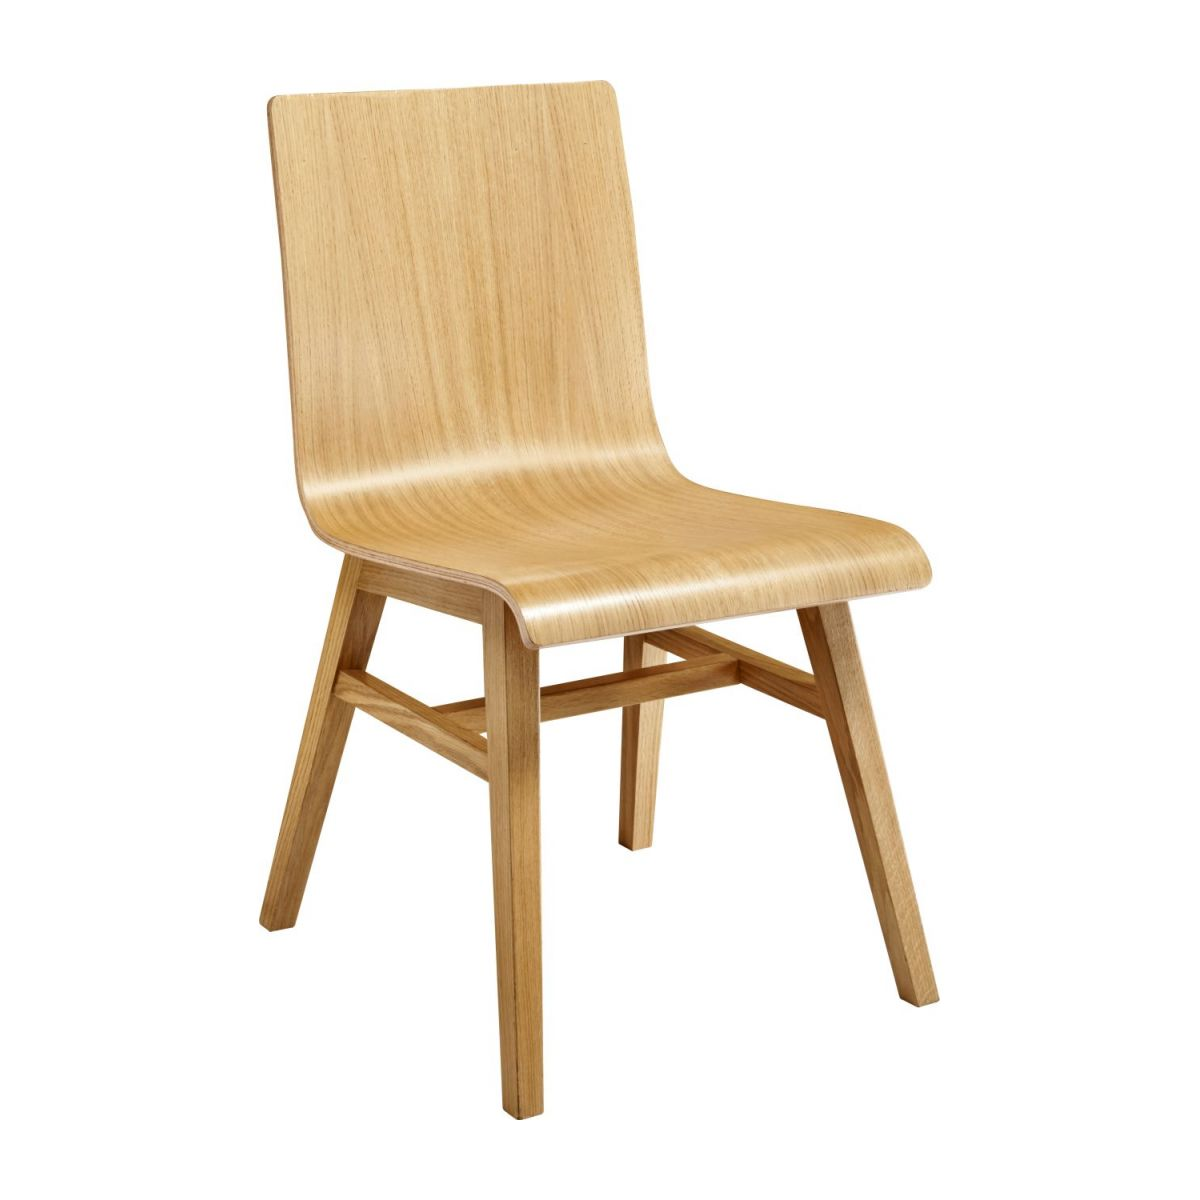 Chaise Fauteuil Pour Salle A Manger Ply Ii Chaise En Chêne Massif